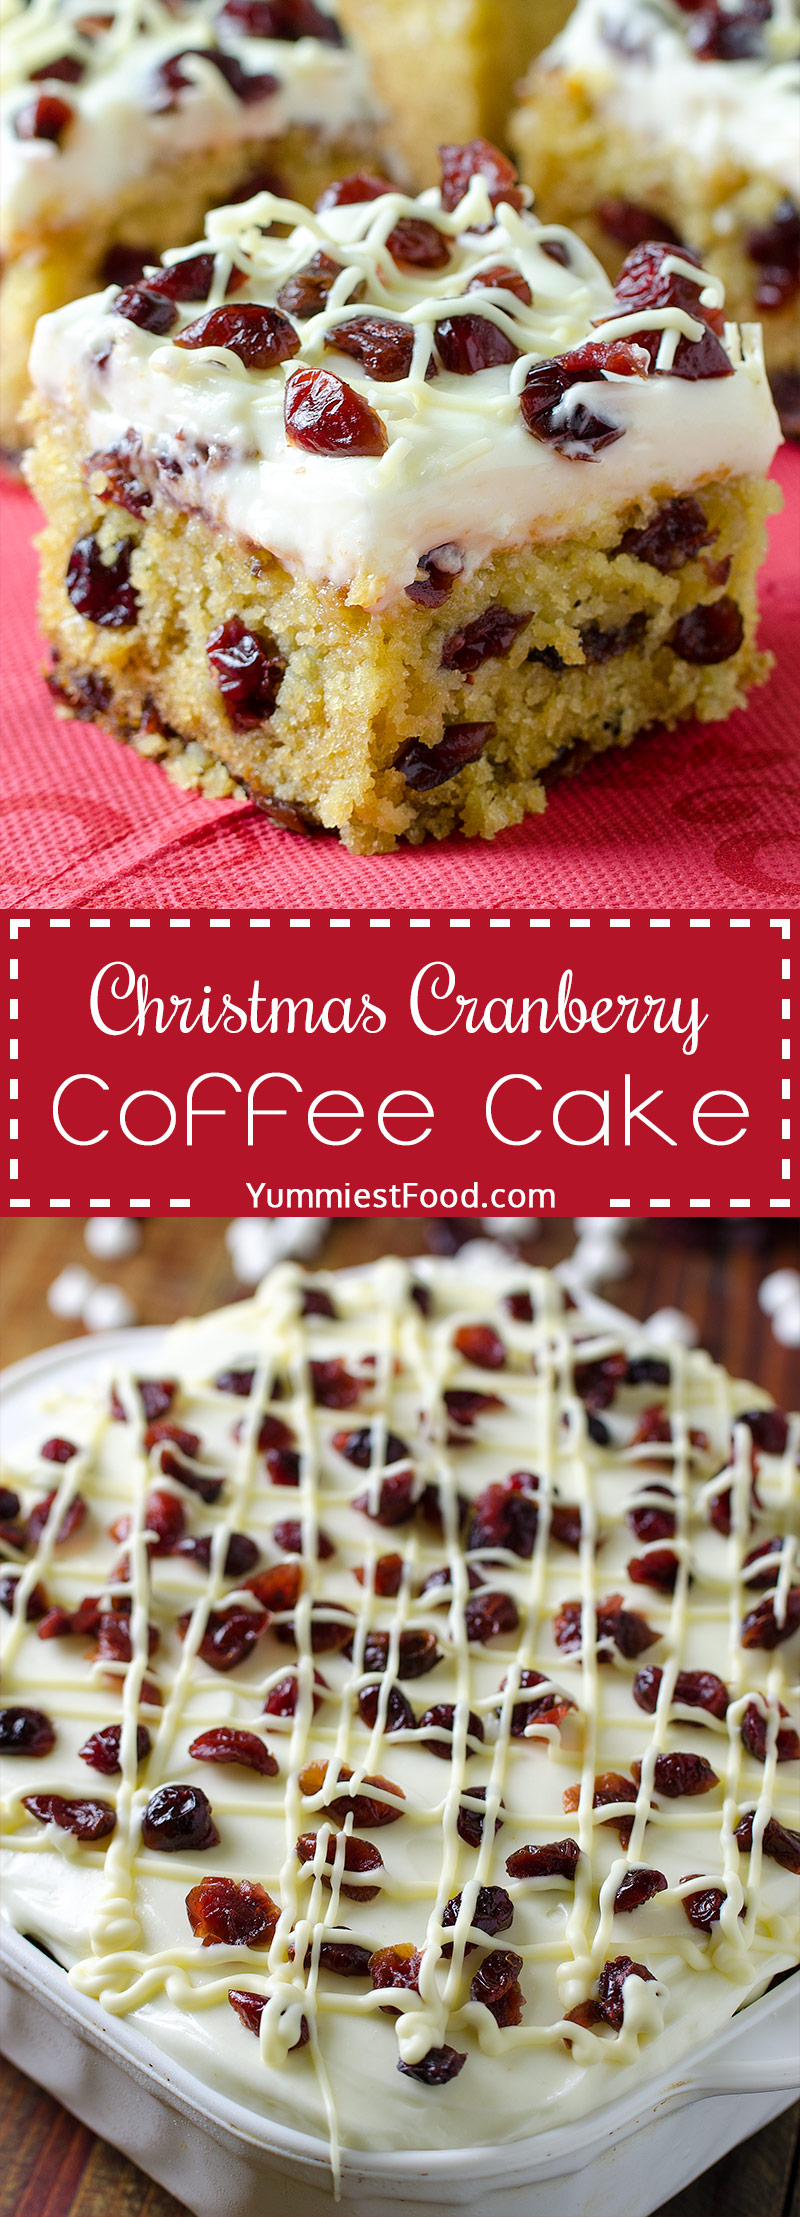 CHRISTMAS CRANBERRY COFFEE CAKE - Easy Cranberry Coffee Cake is perfect Christmas dessert! Loaded with cranberries and white chocolate chips and topped with cream cheese frosting is a family favorite!